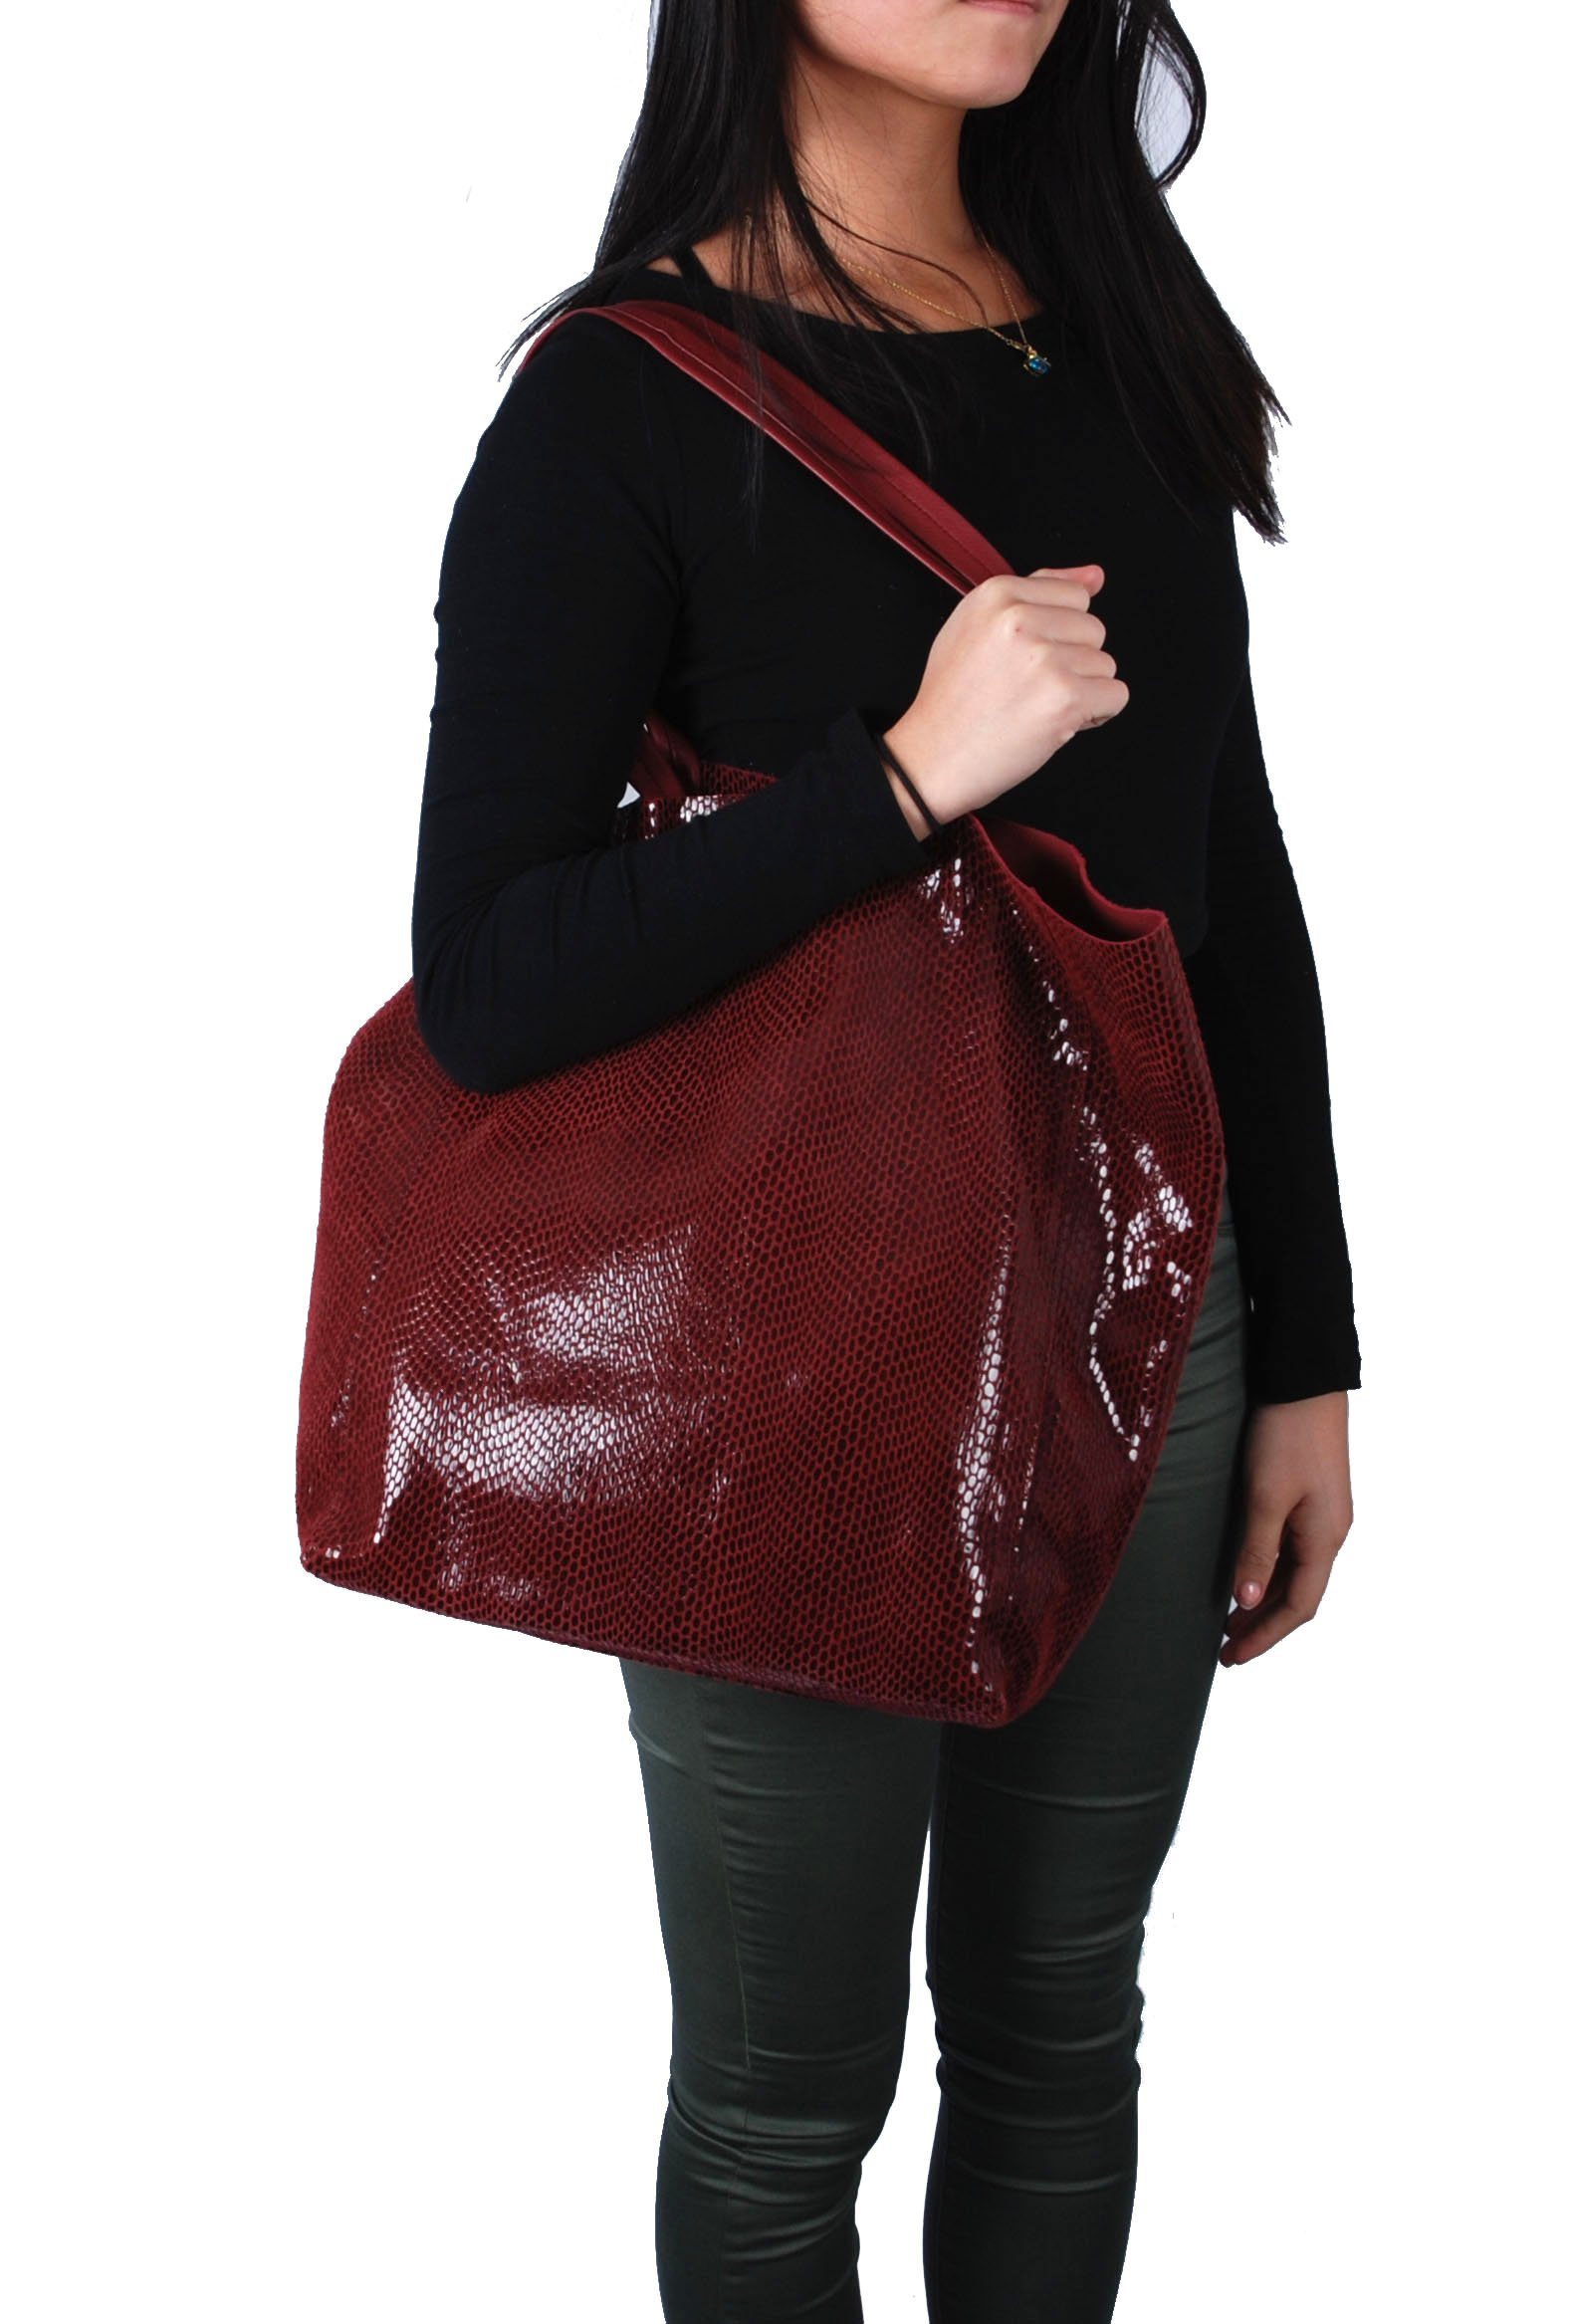 Sorial Rubina Tote, Oxblood,One size by Sorial (Image #2)